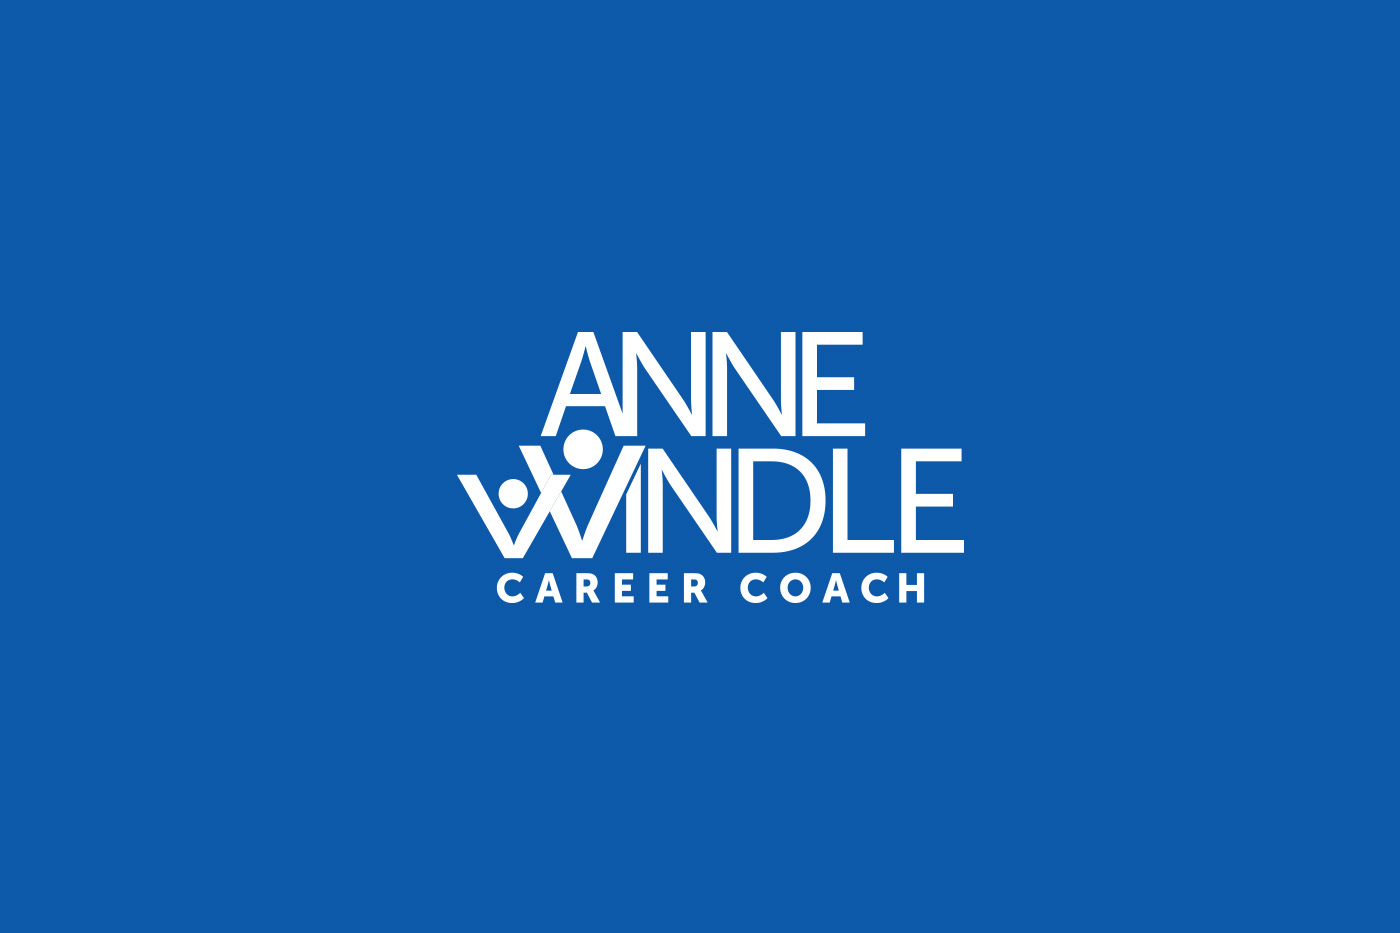 Anne-Windle-Career-Coach-logo-design-2.jpg